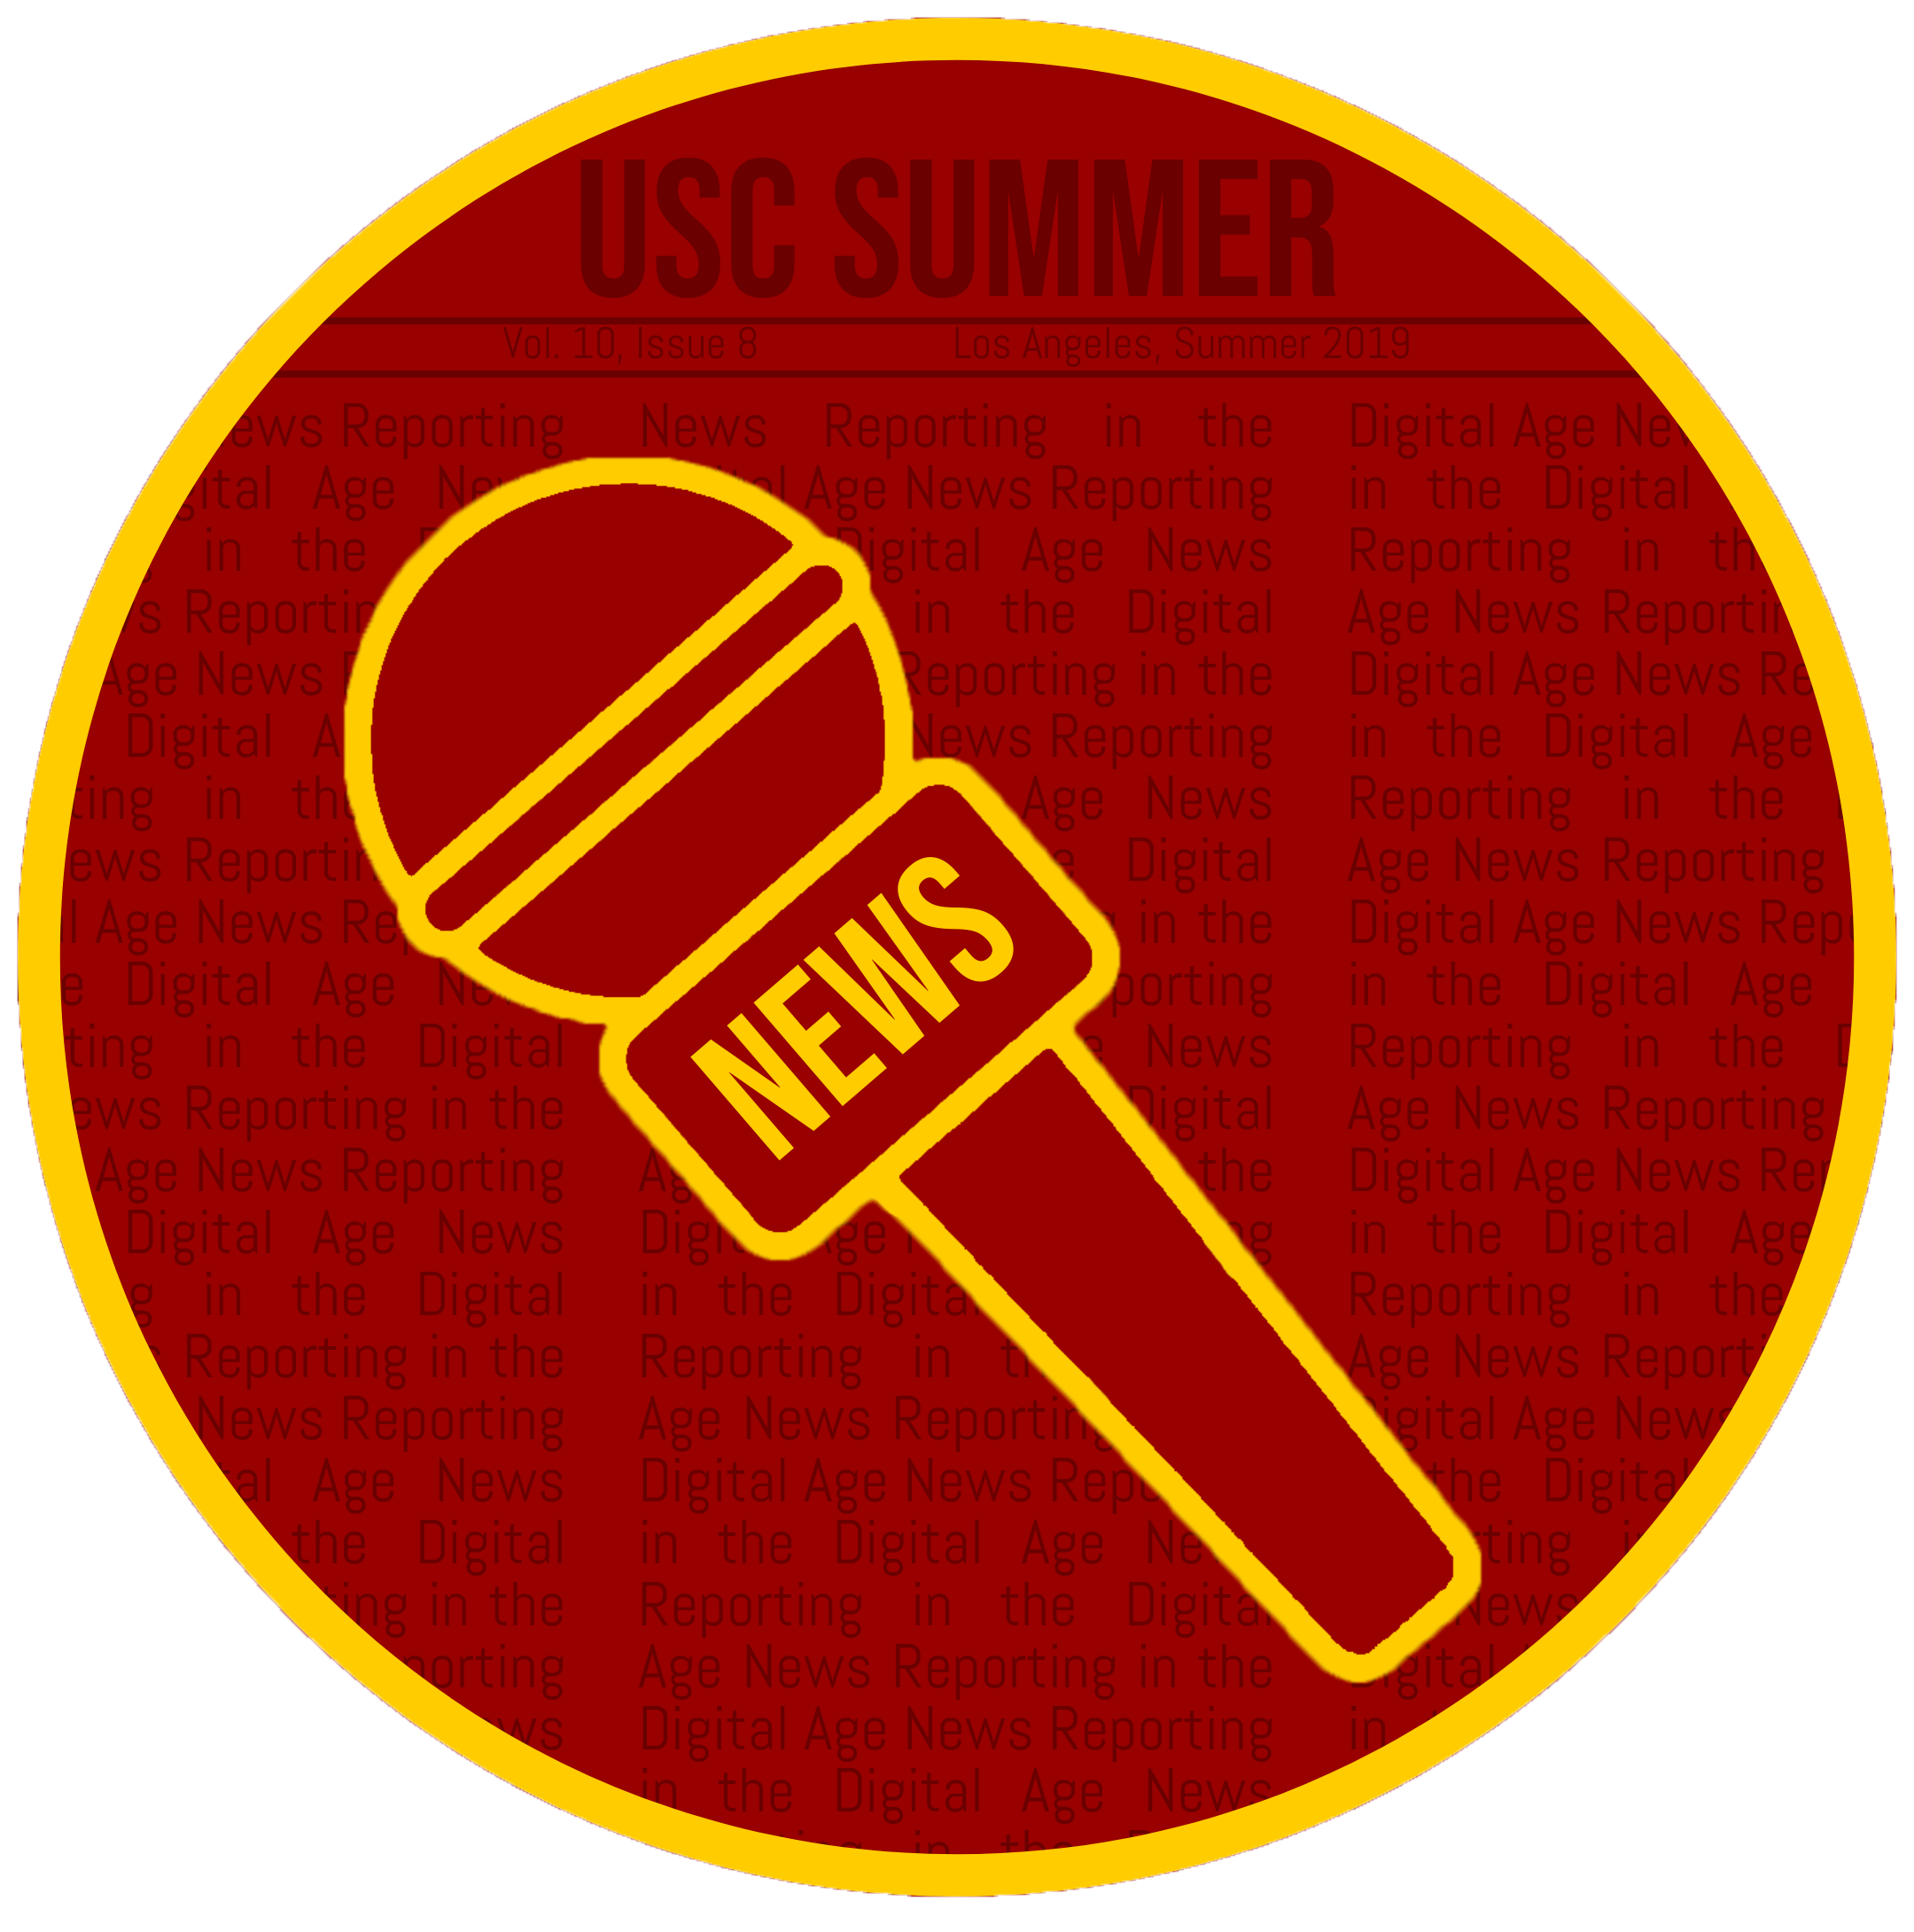 News Reporting in the Digital Age sticker